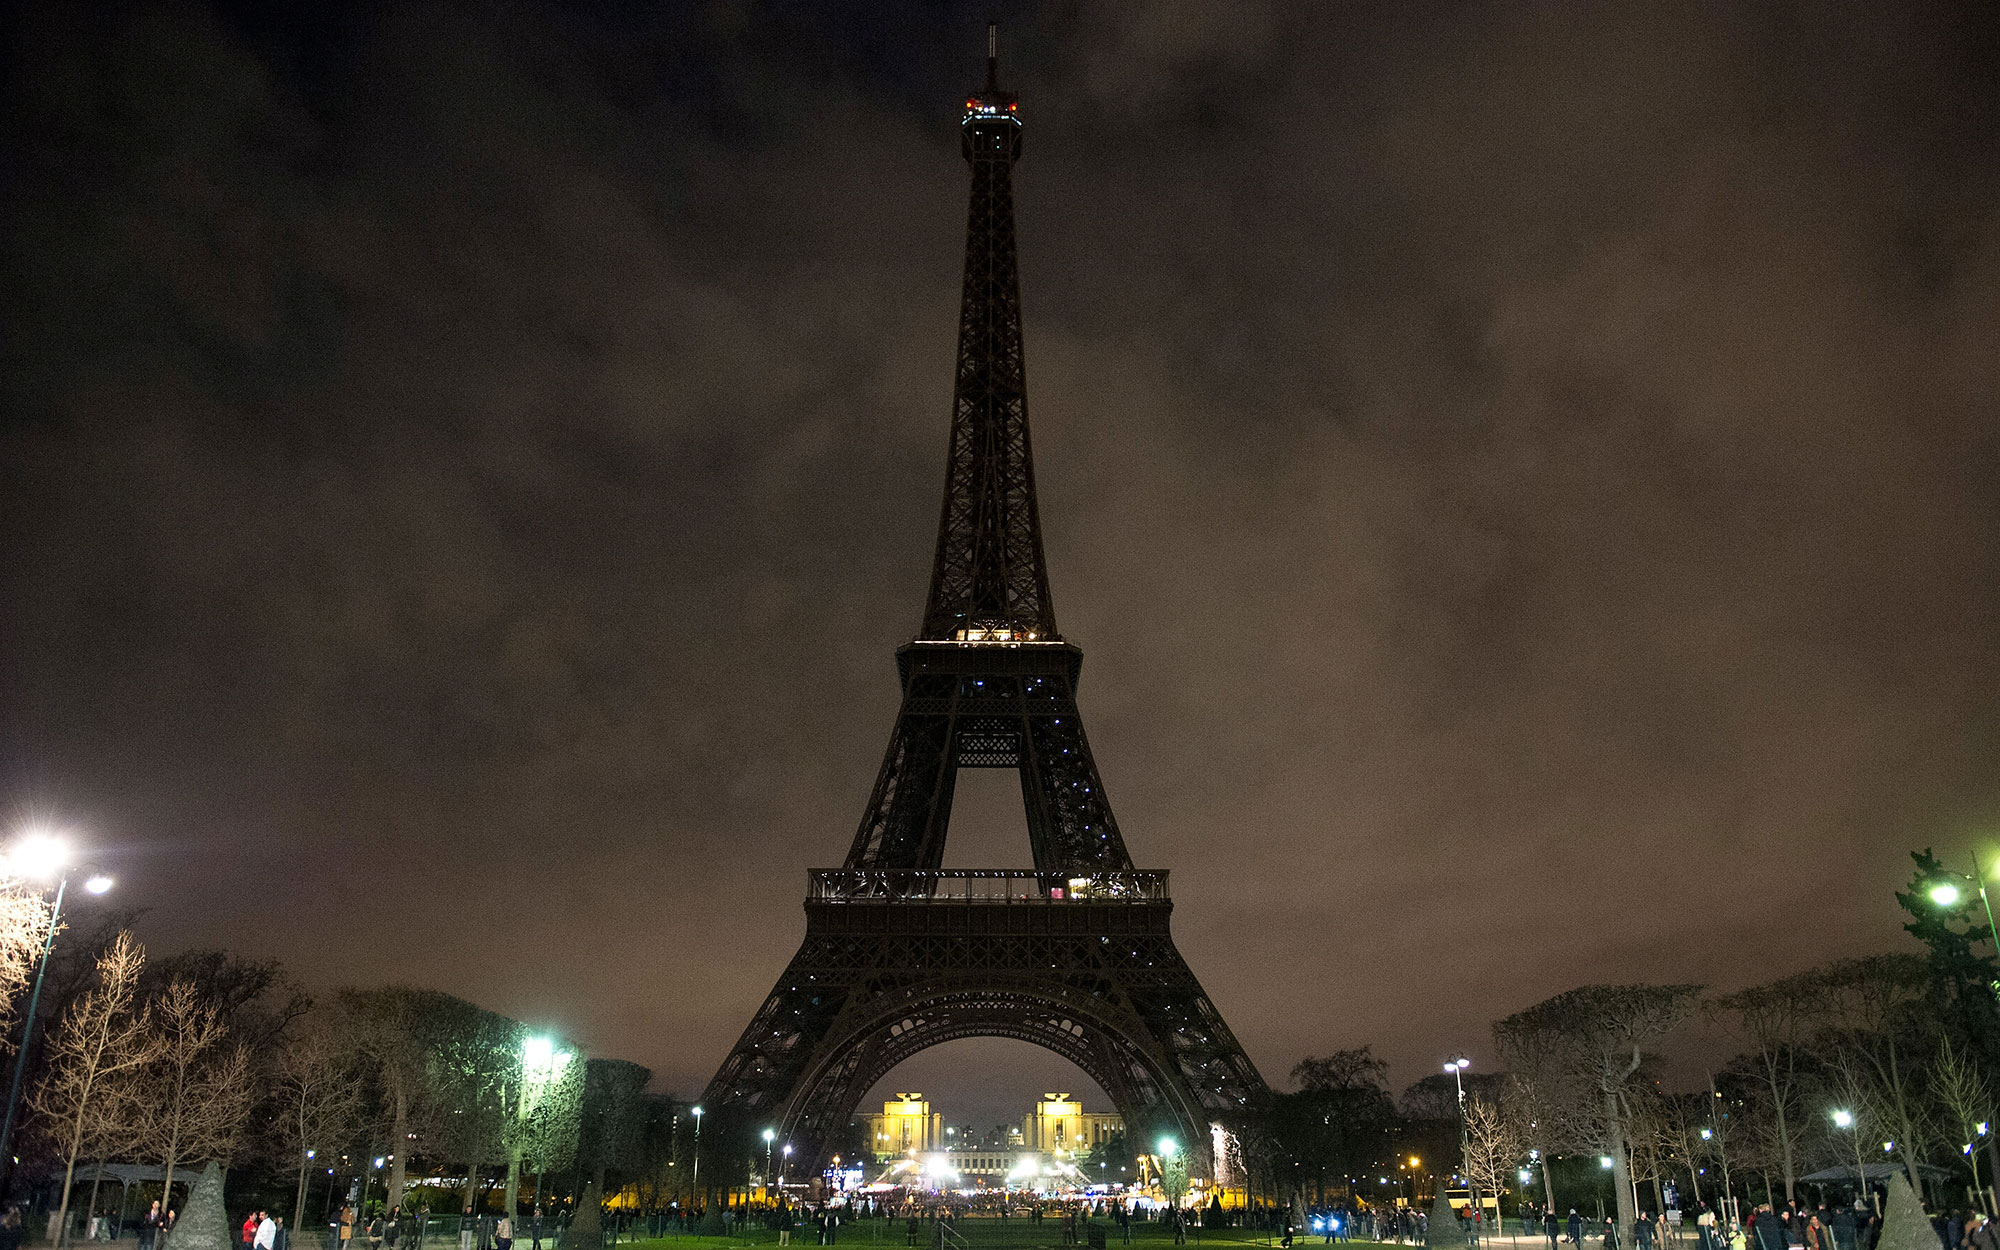 Eiffel Tower Closed Because of Strikes